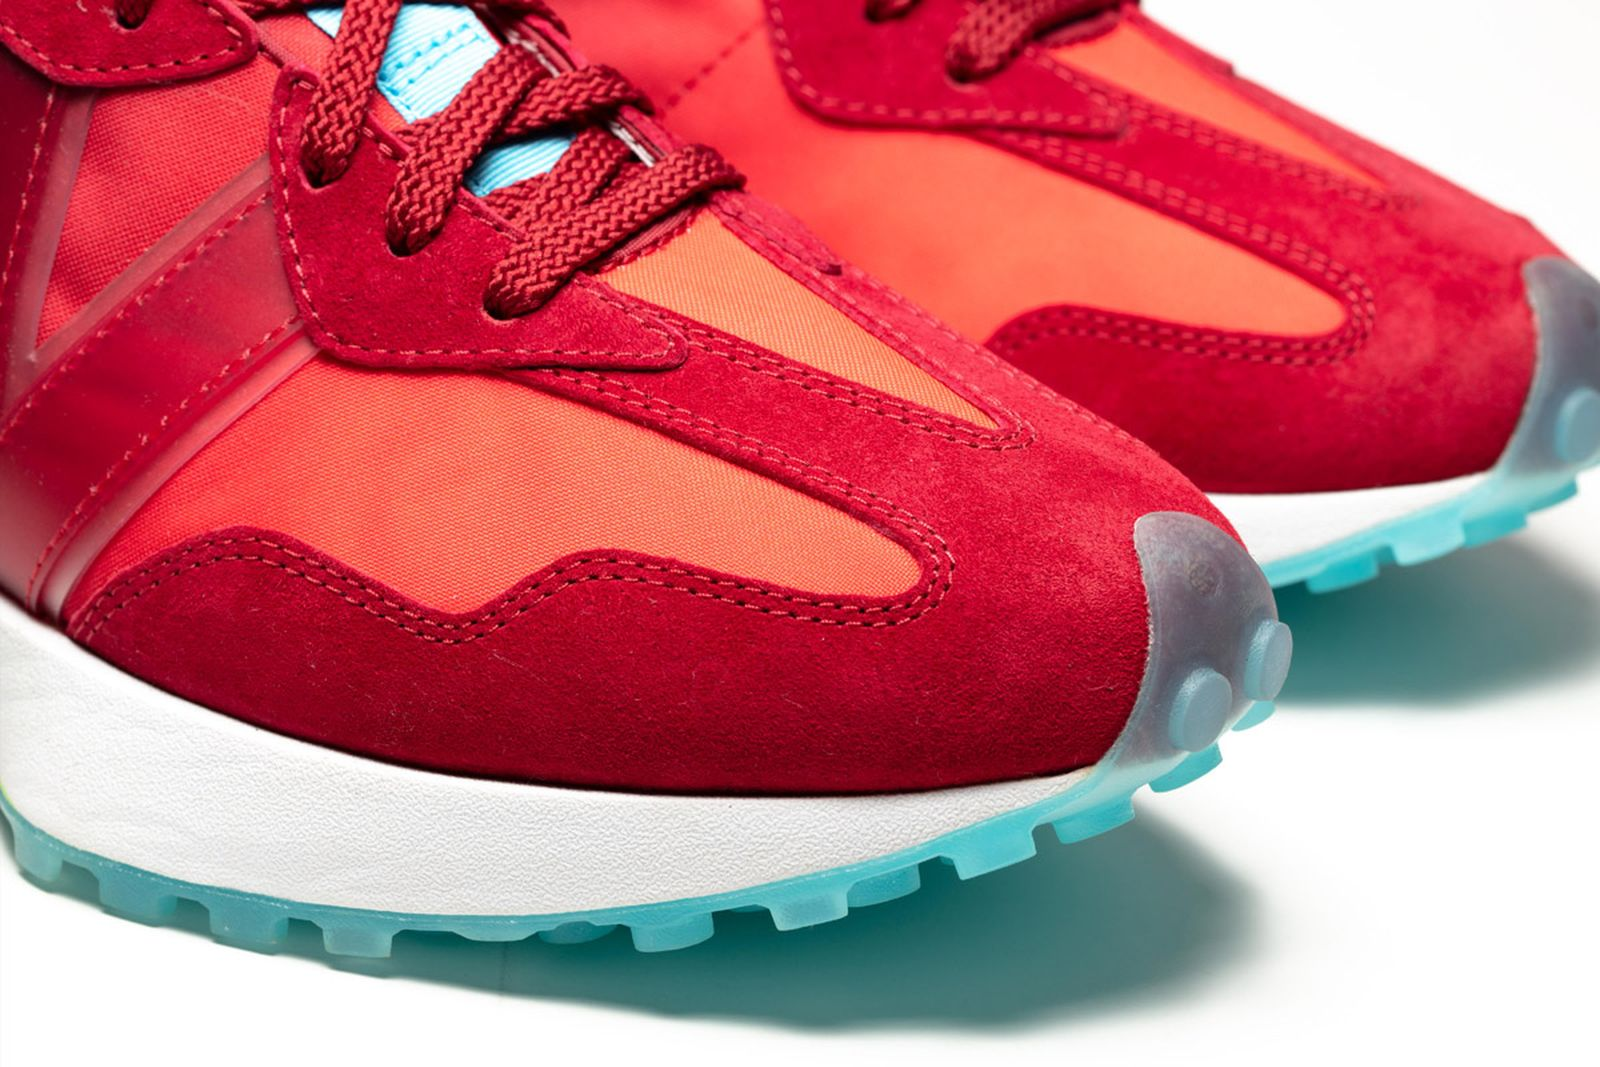 11new-balance-concepts-cranberry-product-shots